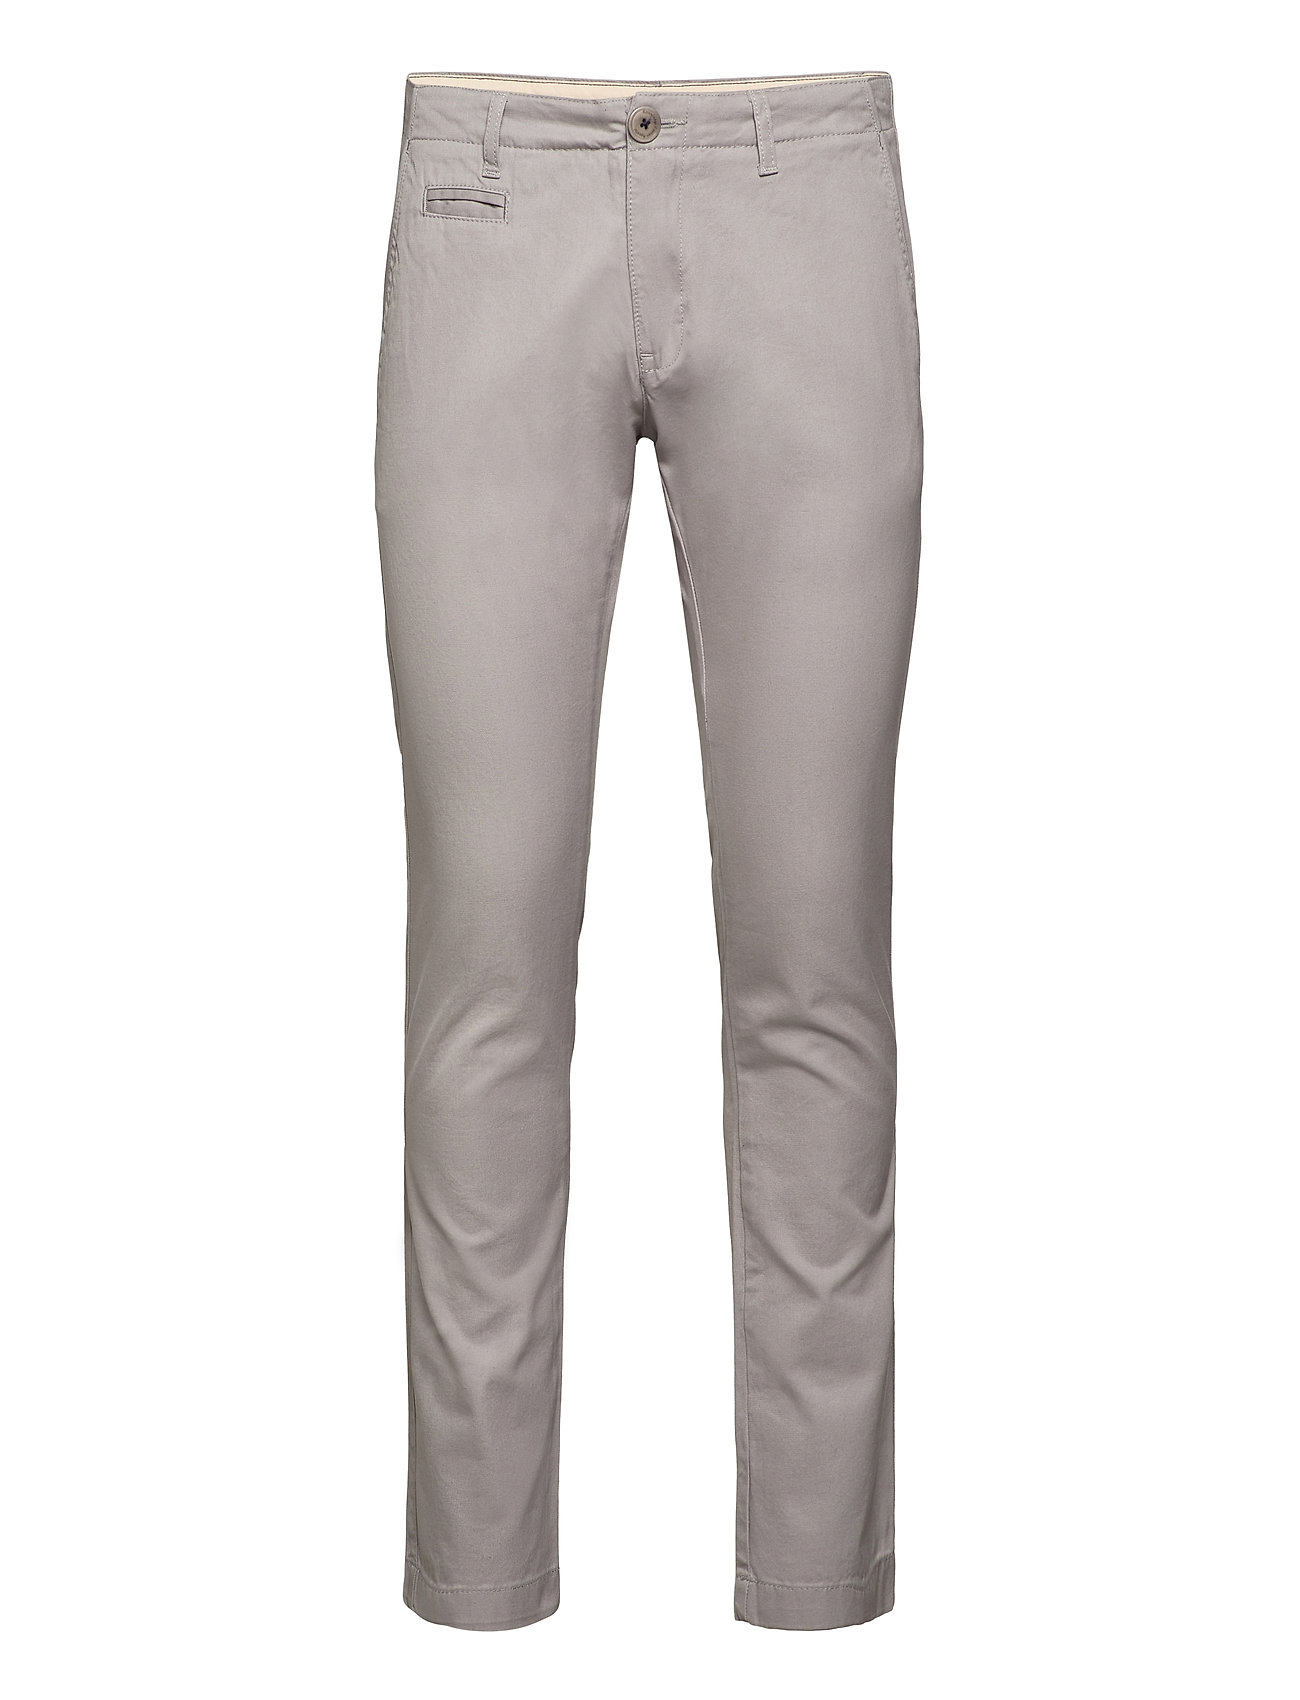 Knowledge Cotton Apparel Twisted Twill Chinos - ALLOY